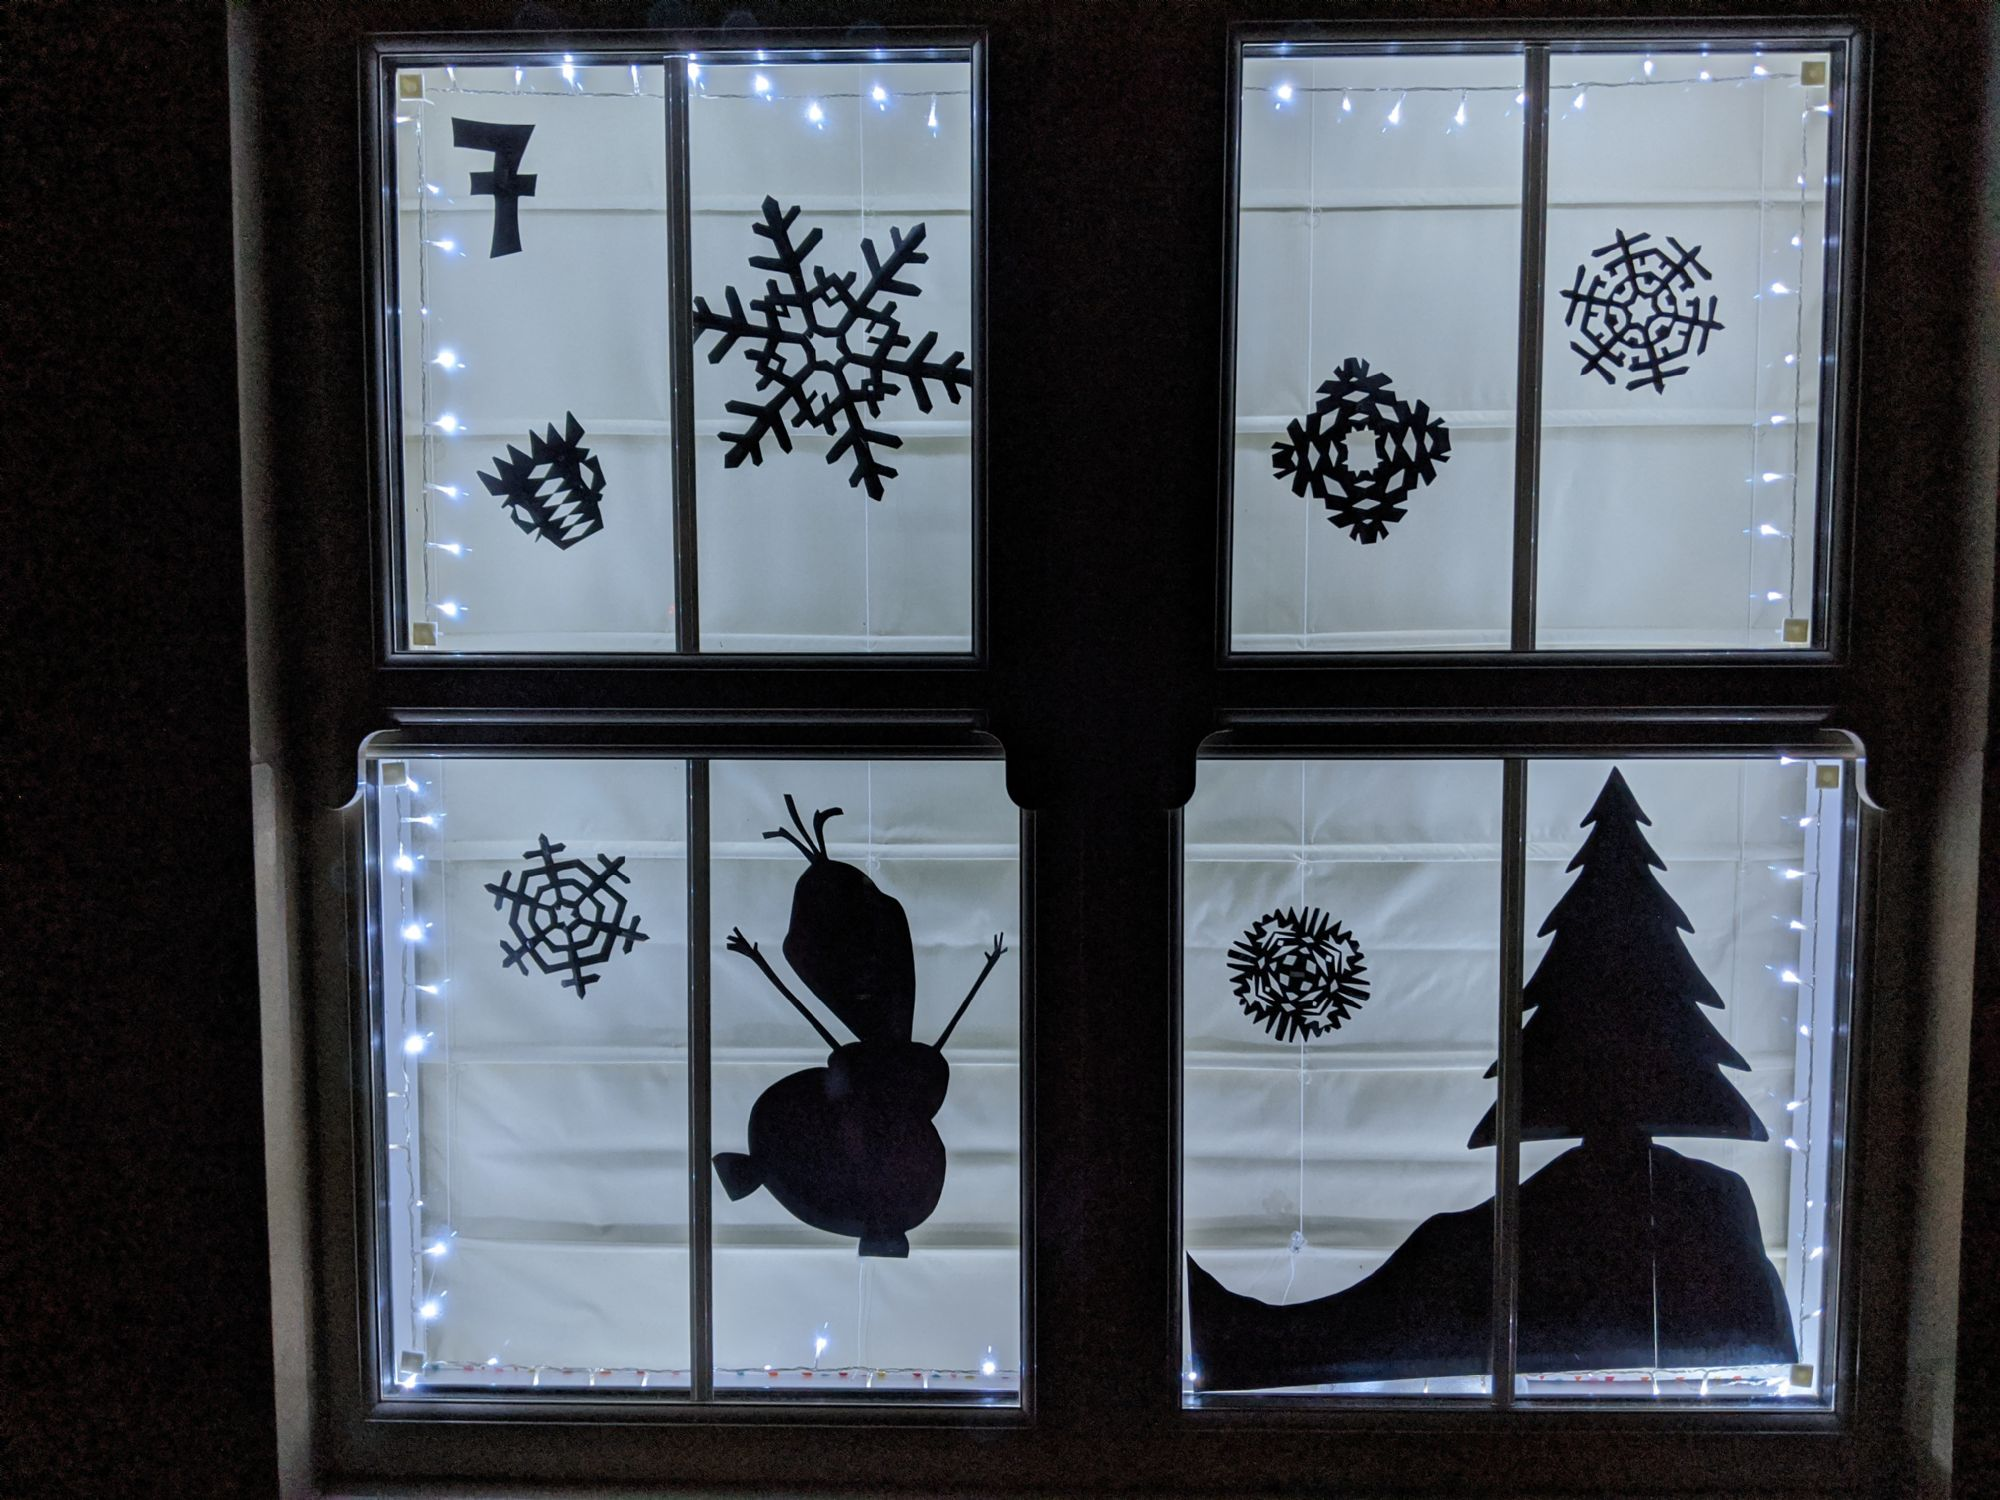 Gotherington Advent Window - shapes cutout in silhouette